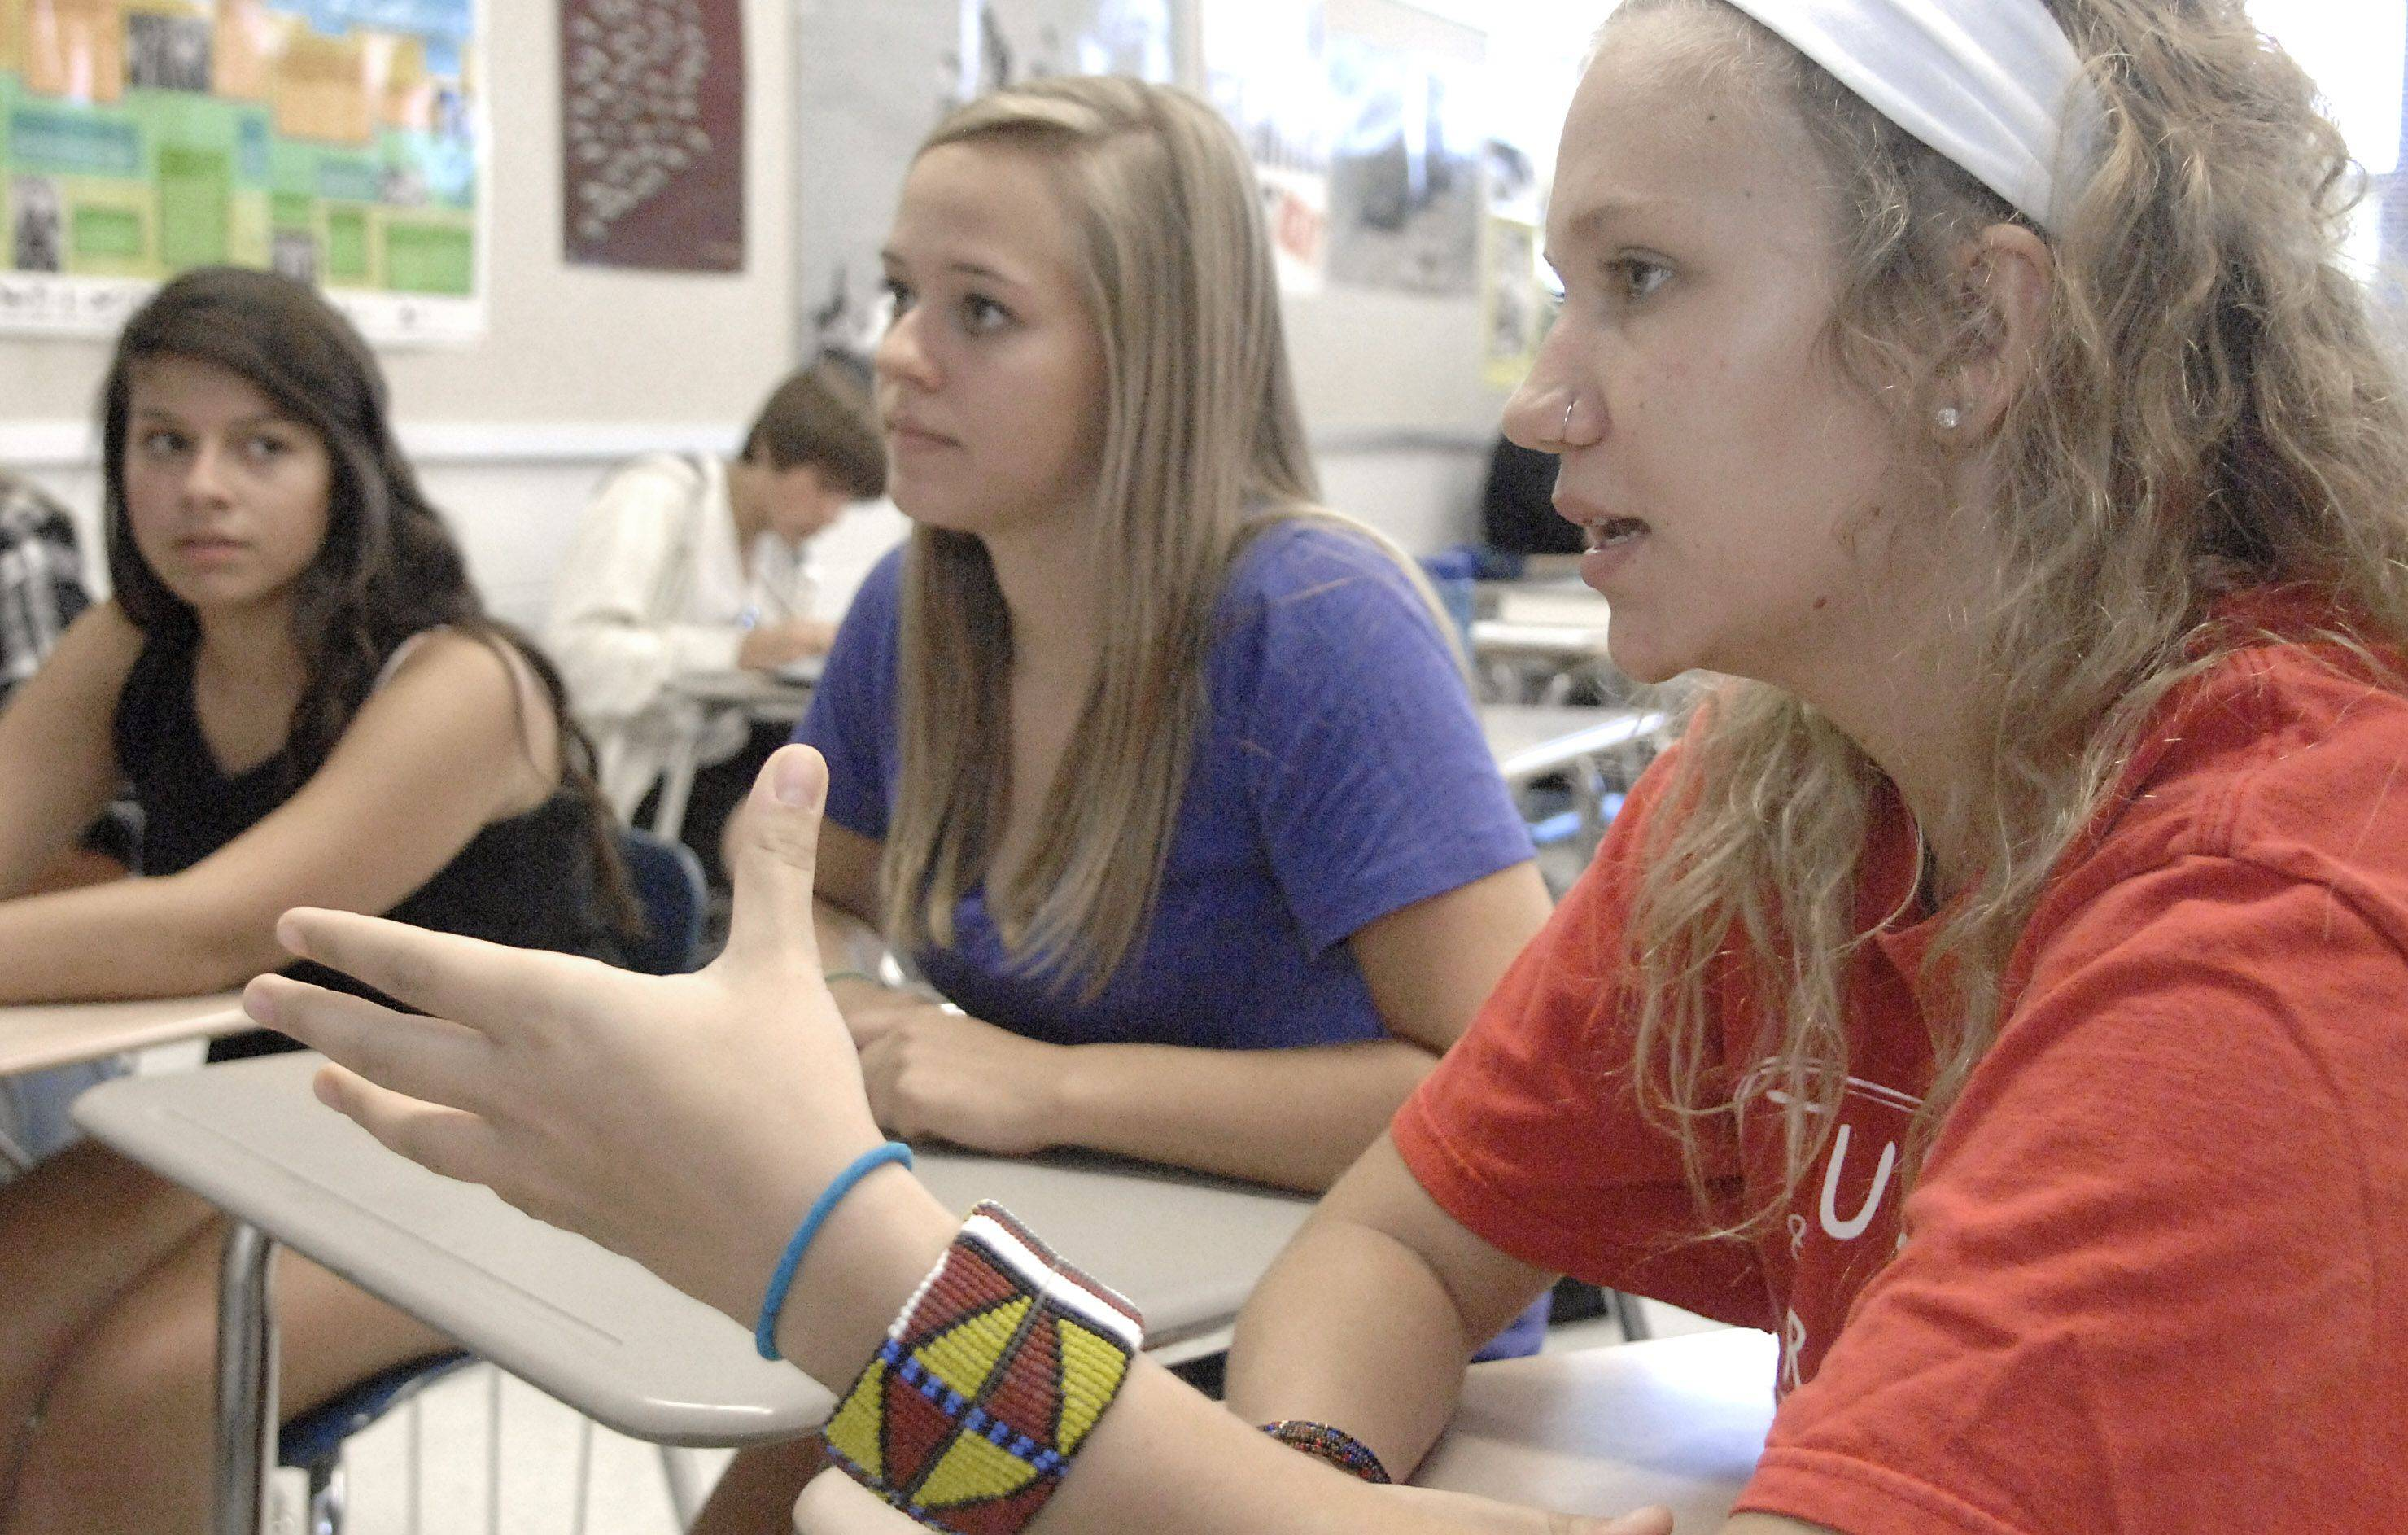 Senior Jenny Wolan, 17, of Algonquin talks with Nina Massion, 16, left, and Katie McDonnell, 17, center, of the Youth Labor Committee in a classroom at Dundee-Crown High School in Carpentersville about unfair trade practices. They have been circulating a petition and have already gotten thousands of signatures.